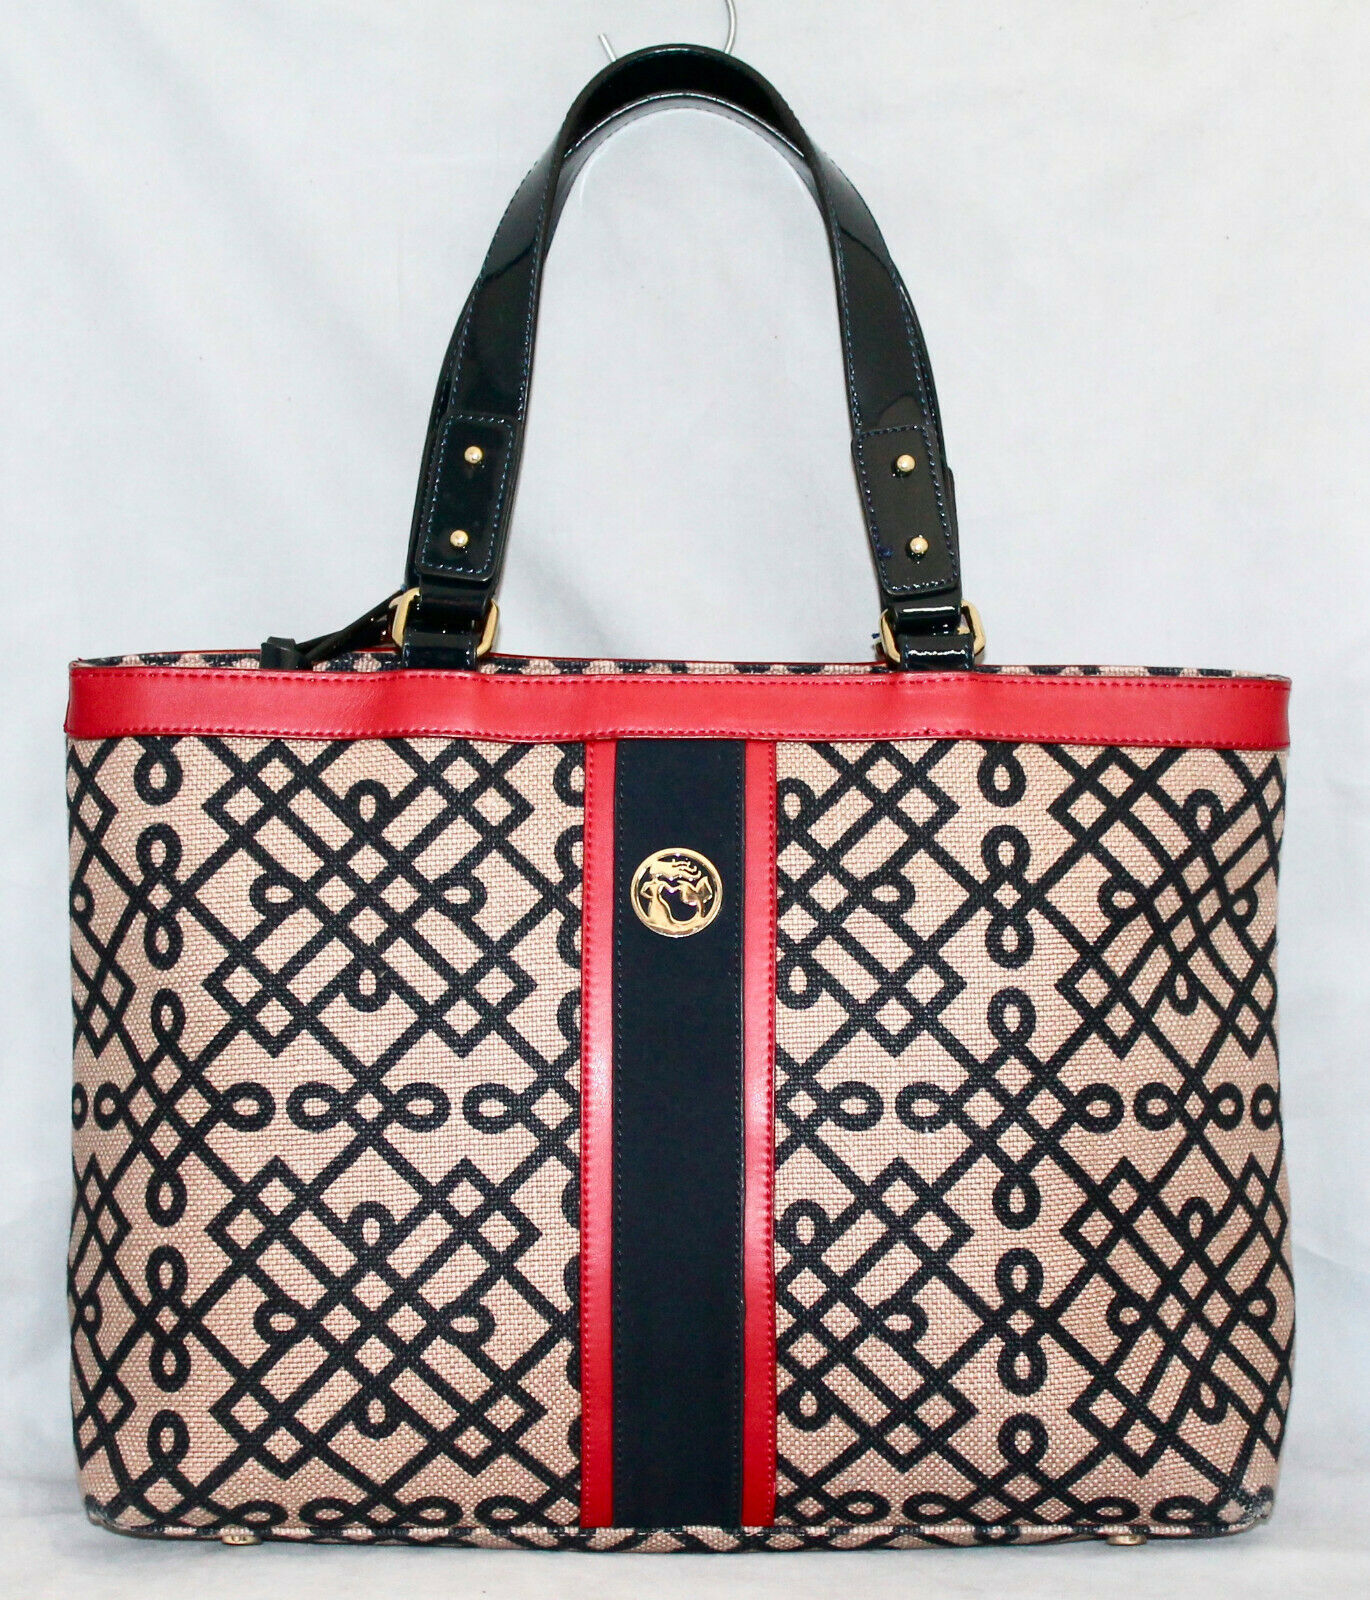 SPARTINA Large Pender Tote in Tan Black Red Linen & Leather Gold Hdwr